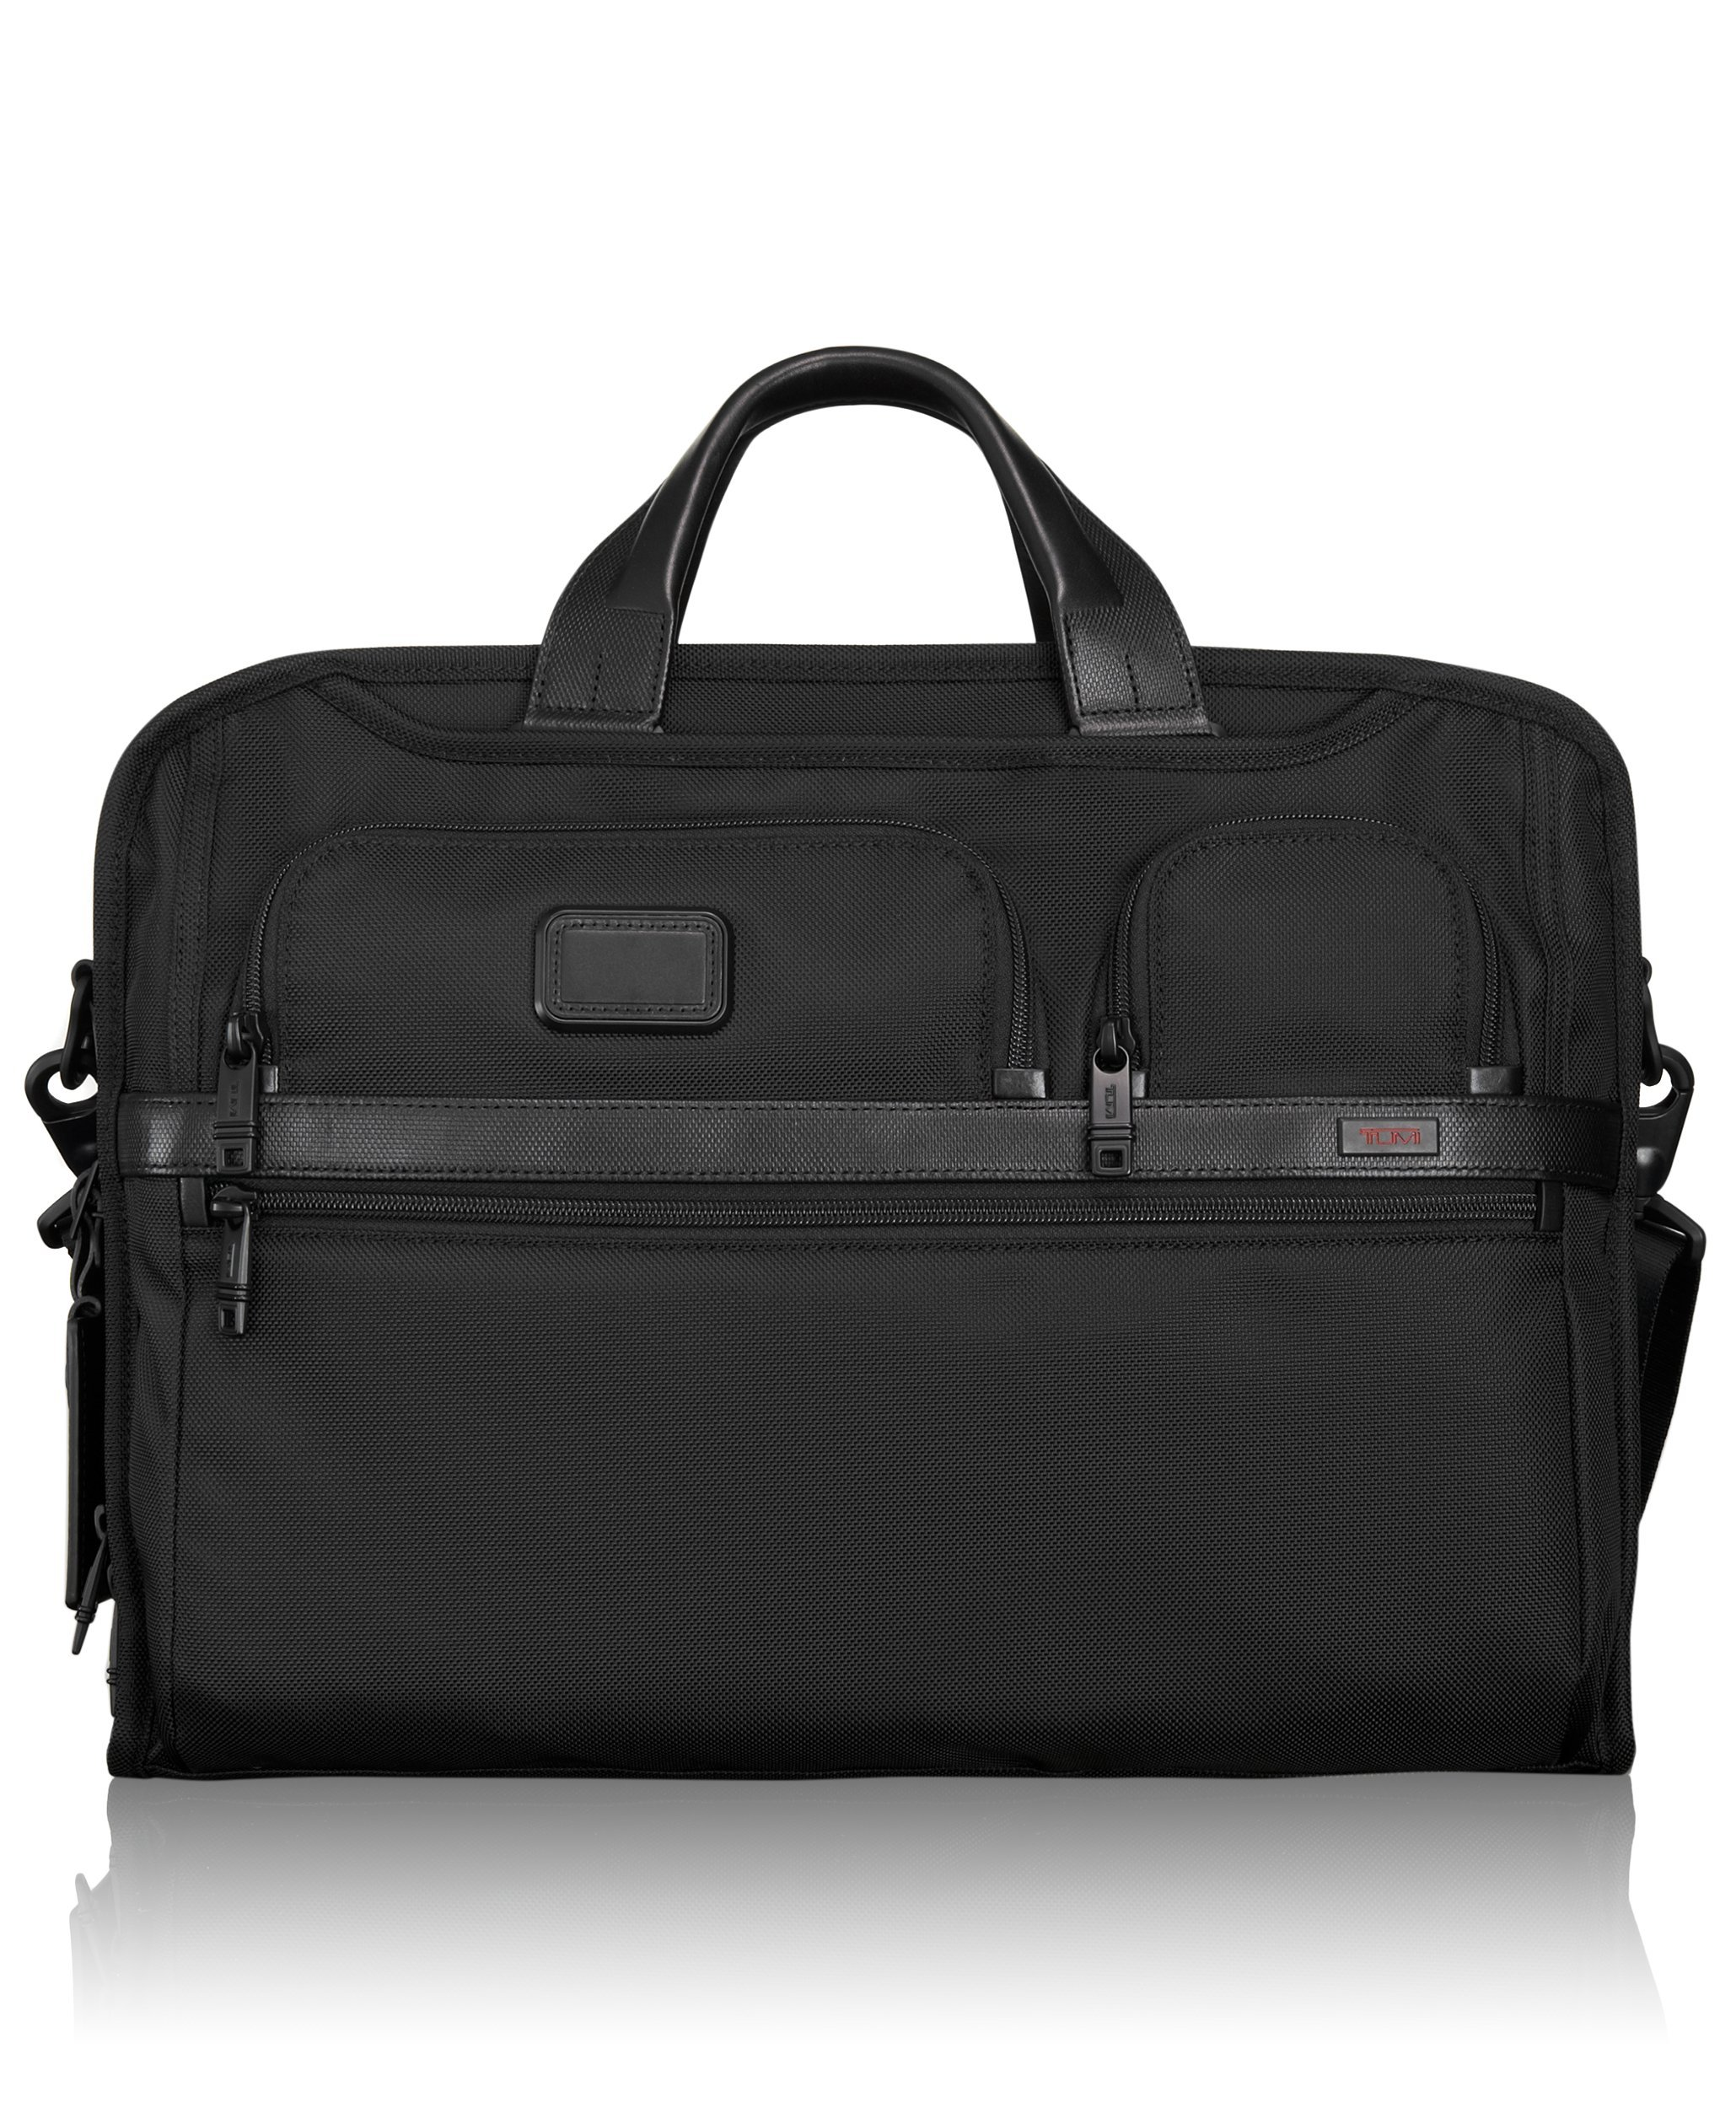 Tumi Alpha 2 Compact Large Screen Laptop Brief, Black, One Size